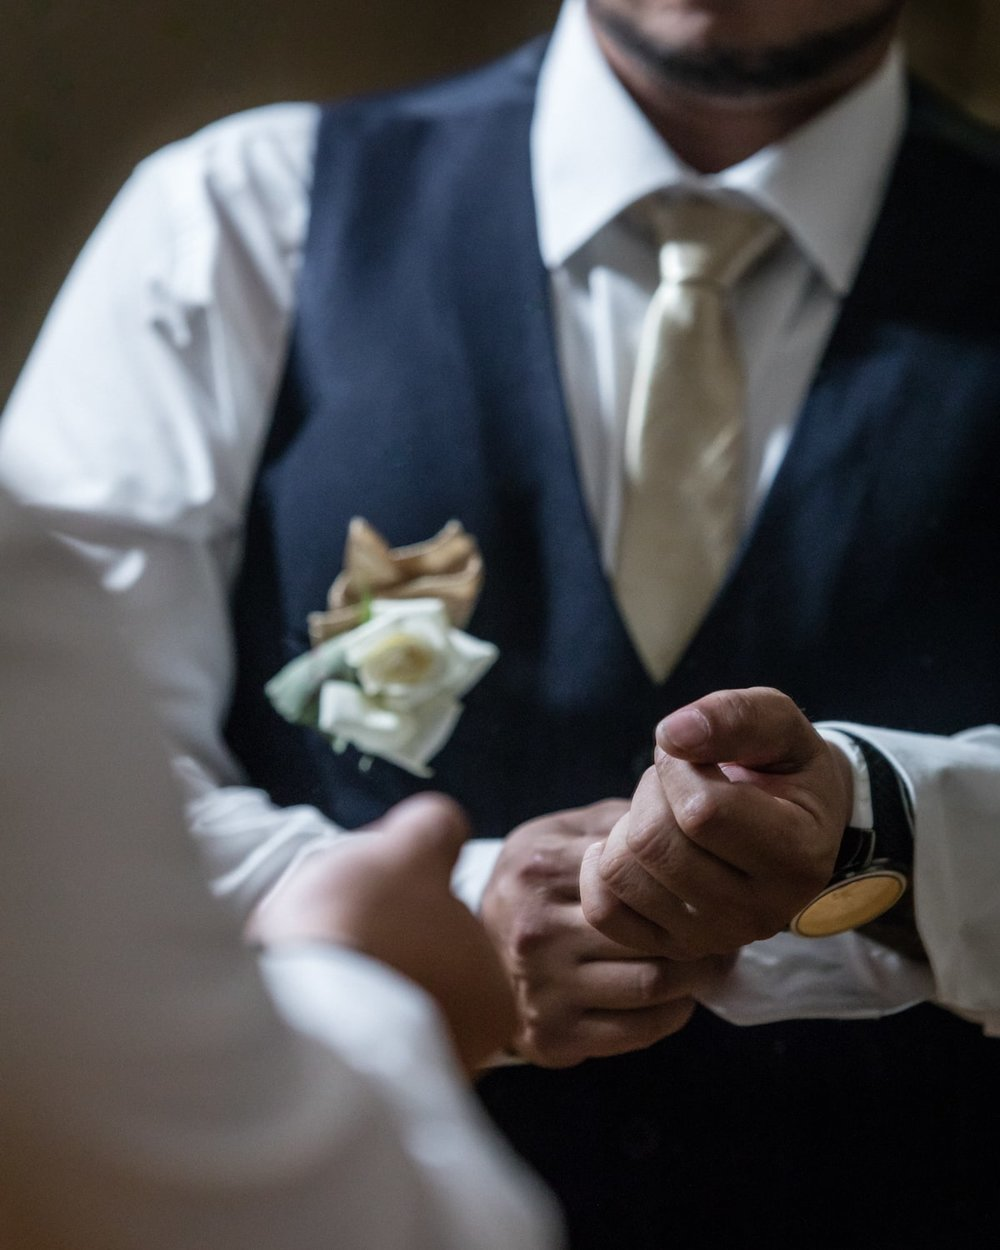 Groom wearing boutonniare preparing on his wedding day.